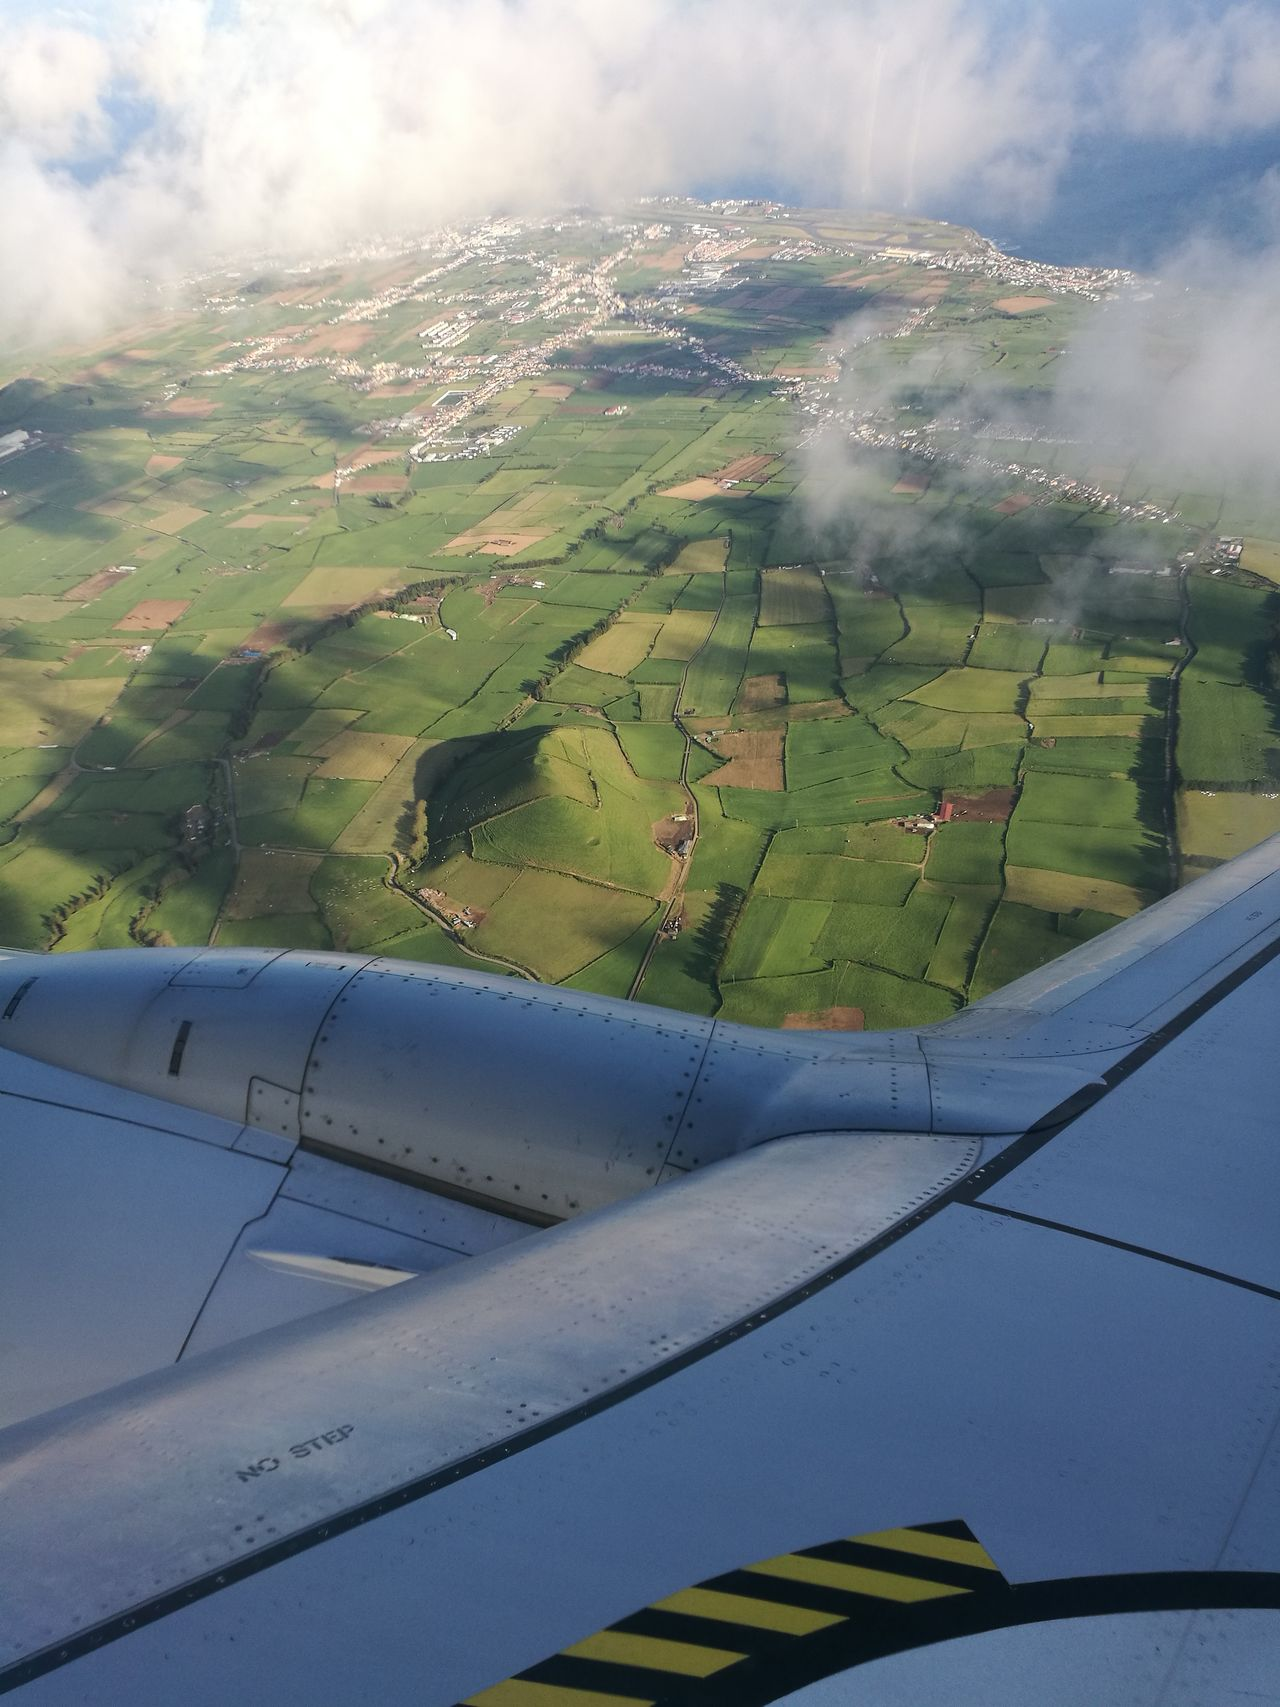 Agriculture Farm Aerial View Field Rural Scene Landscape Airplane Outdoors Sky Flying Scenics Nature Azores Travel Window Plane Aerial Shot Horizon Over Water Aerial Photography Cloud And Sky Aircraft Wing Transportation Field Farm Agriculture